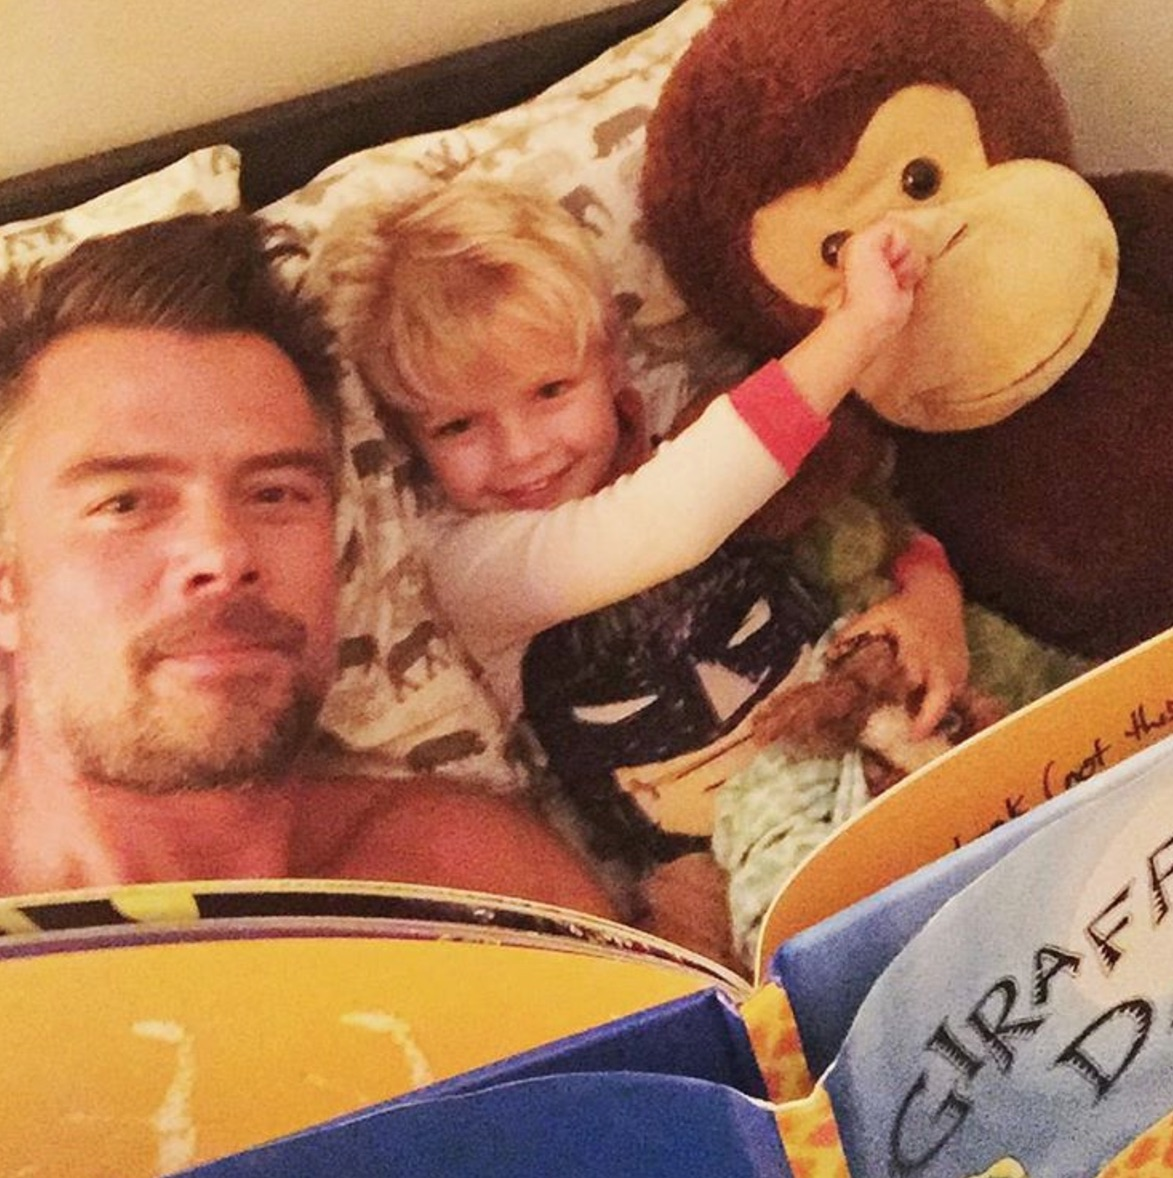 A recent image from Duhamel's Instagram account shows him reading to his son, Axl